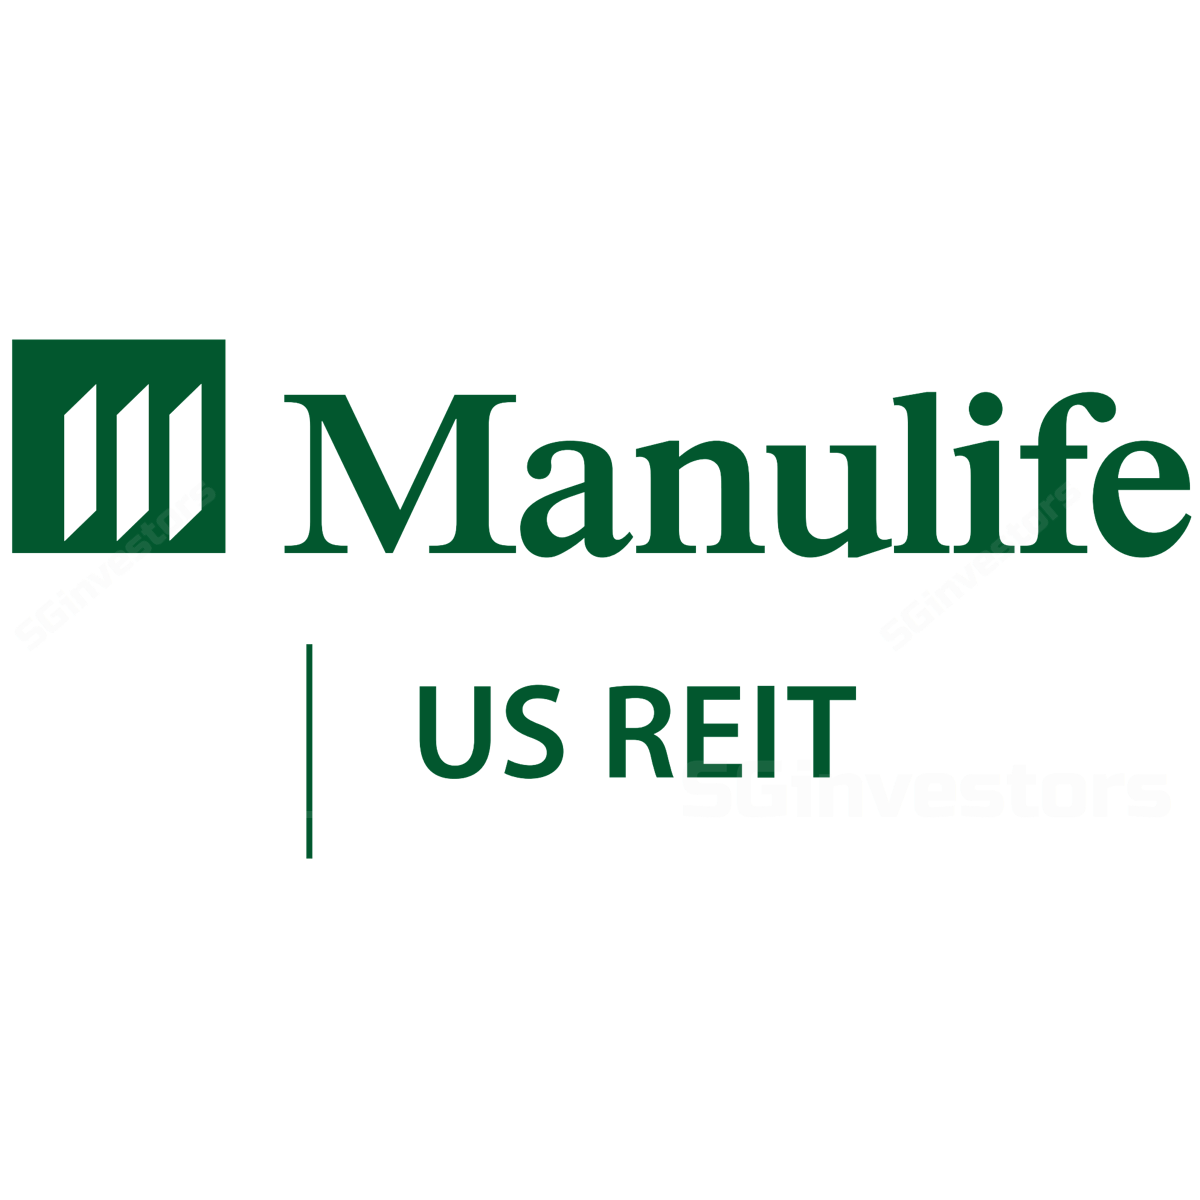 Manulife US REIT - RHB Invest 2017-08-10: Key Notes From Investor Luncheon